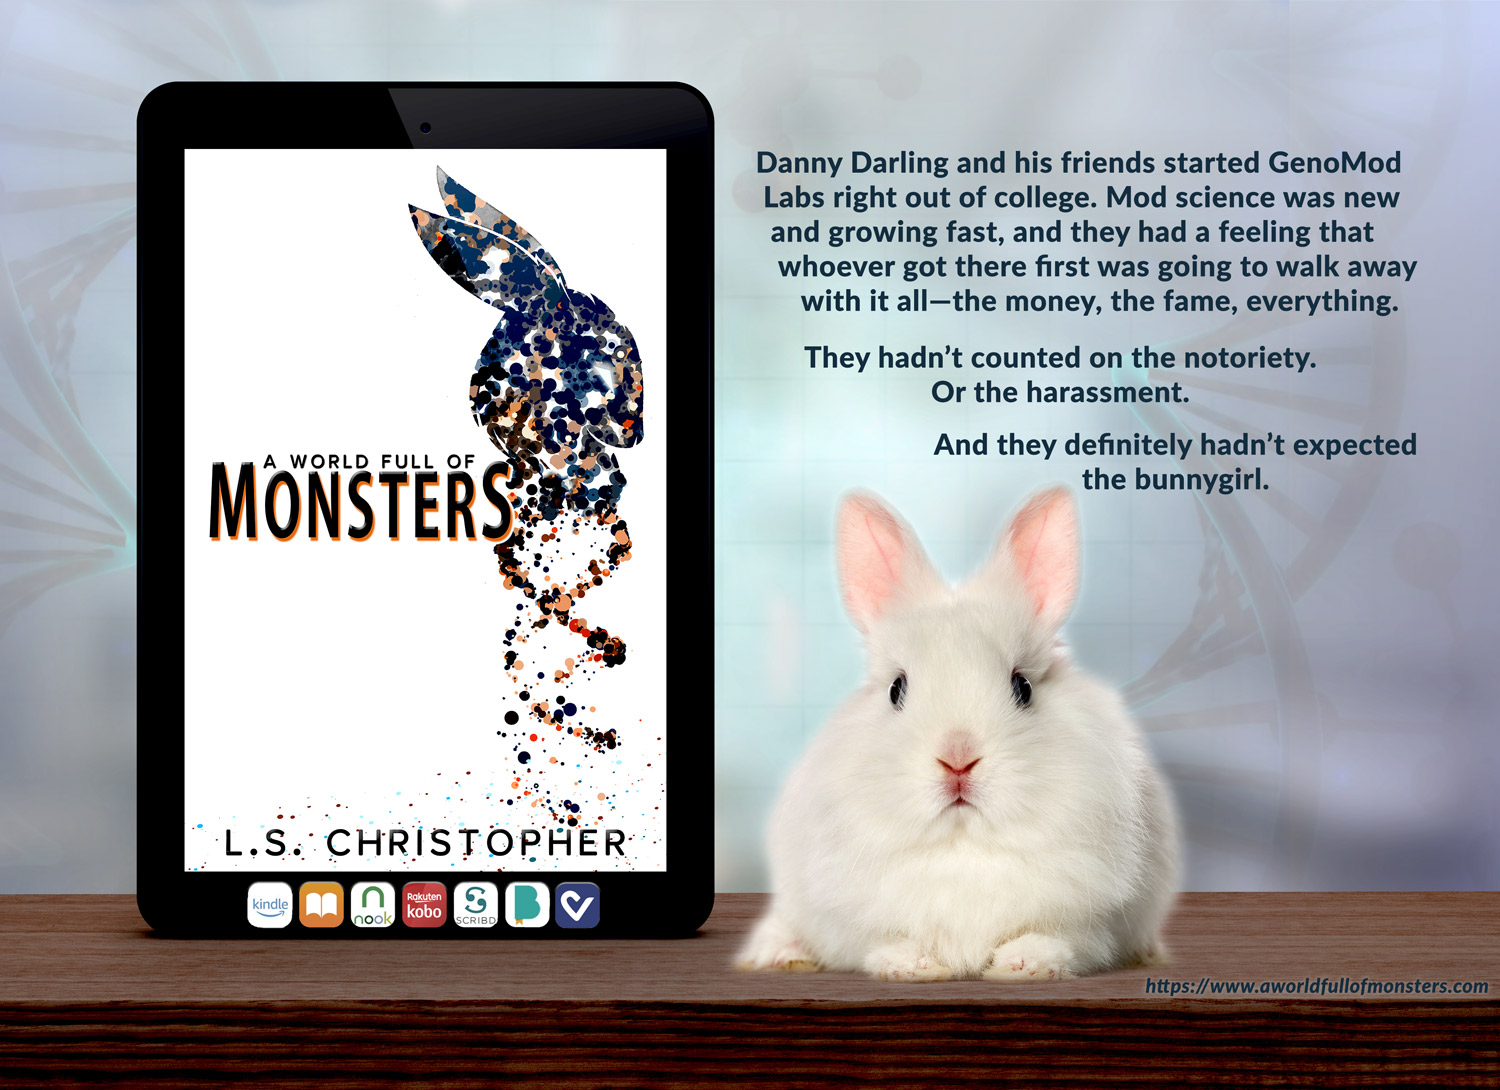 A World Full of Monsters book promo image - with adorable bunny!